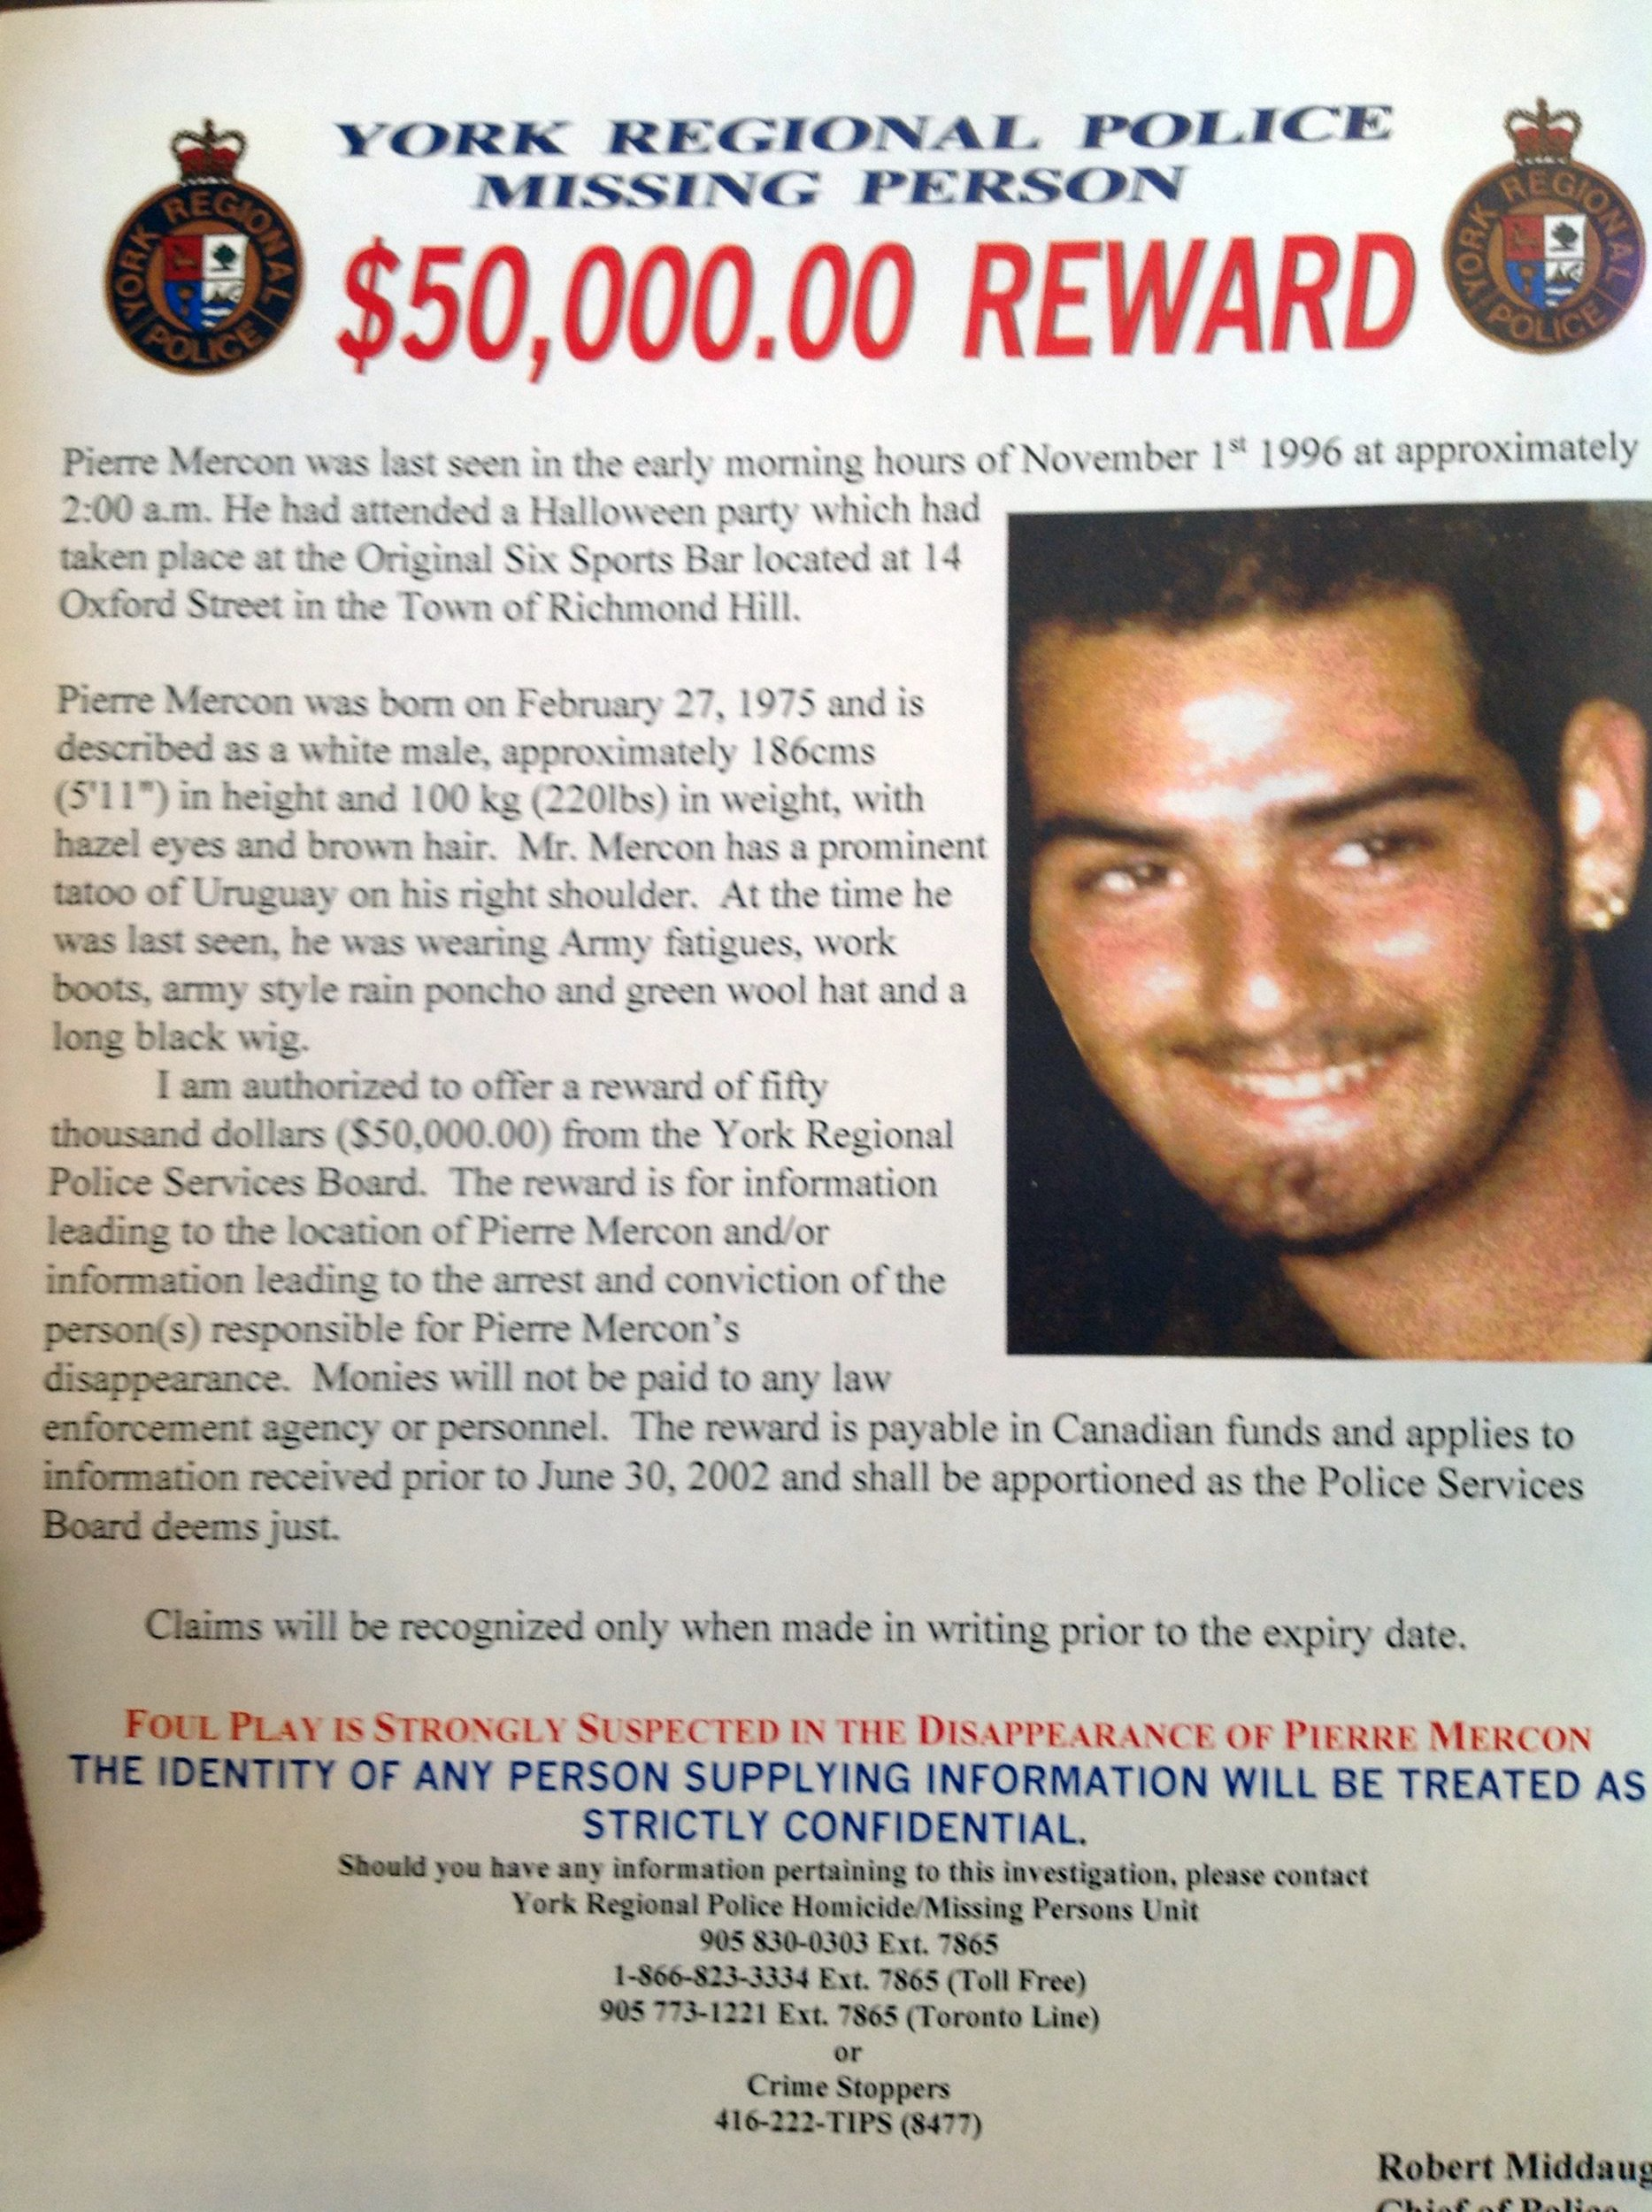 A missing person poster offering a $50,000 reward of information on the whereabouts of Pierre Mercon